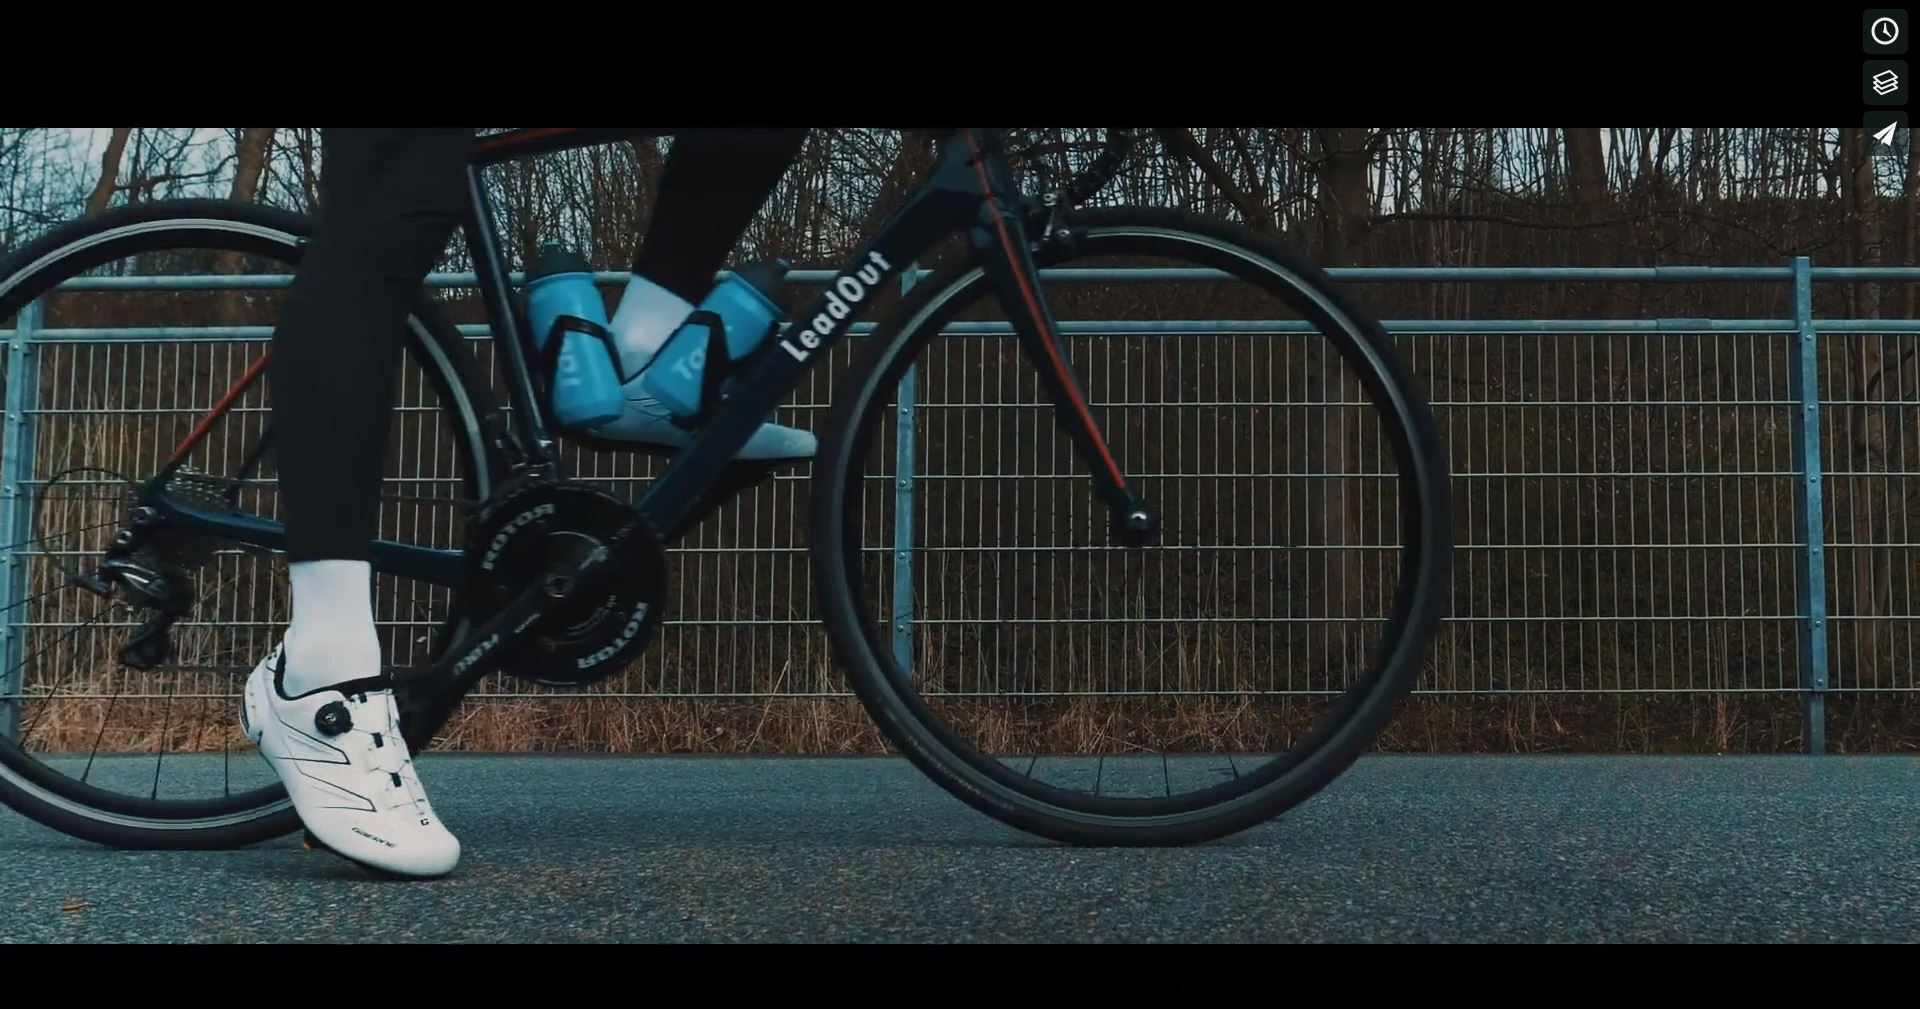 LeadOut in promofilm Midzomer Challenge